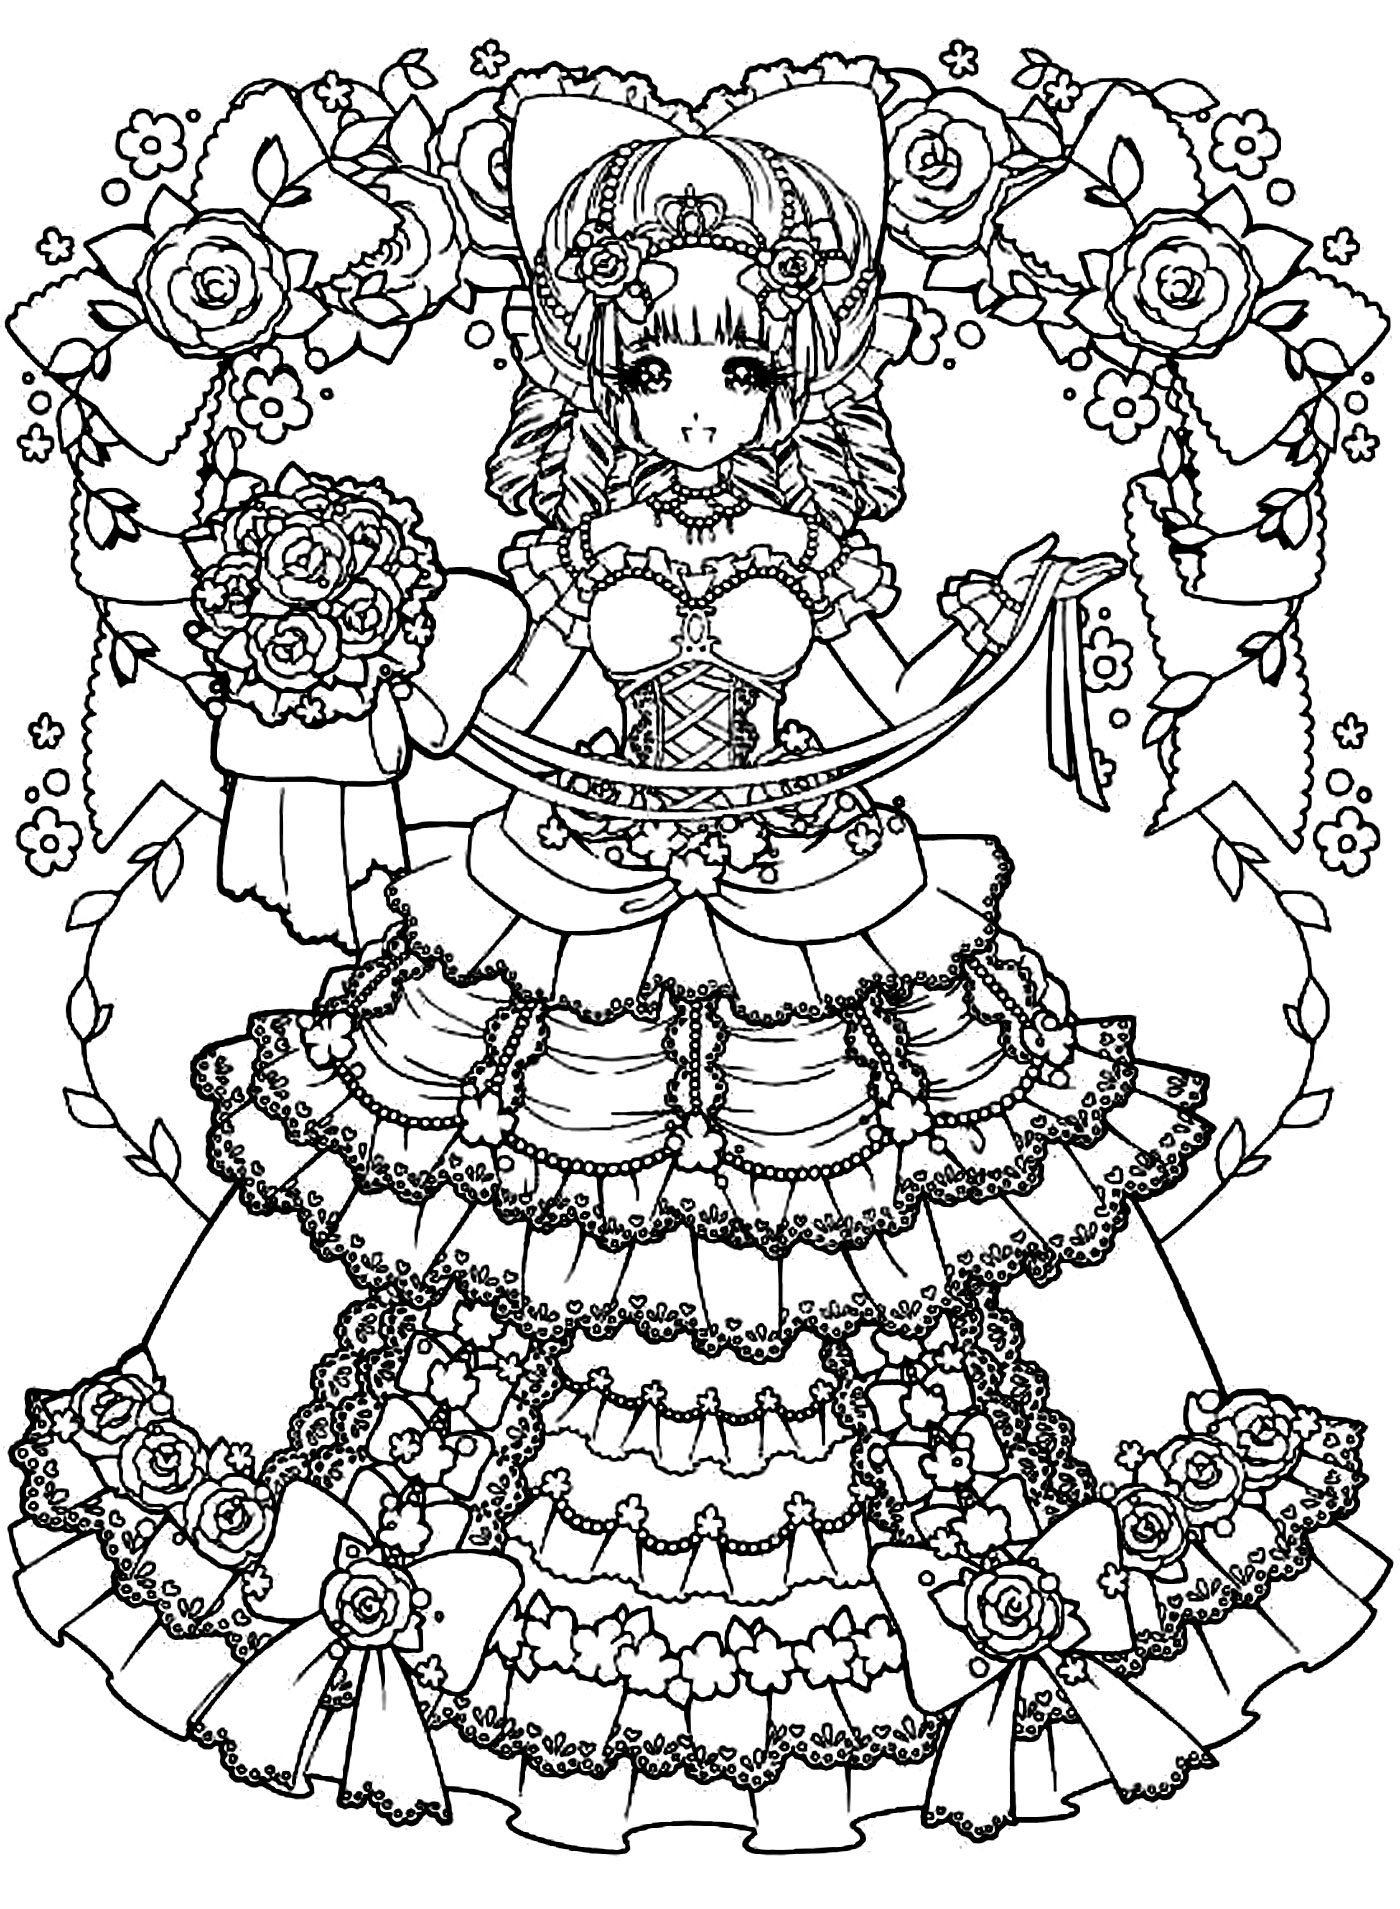 coloring sheet anime girl anime coloring pages getcoloringpagescom anime girl sheet coloring